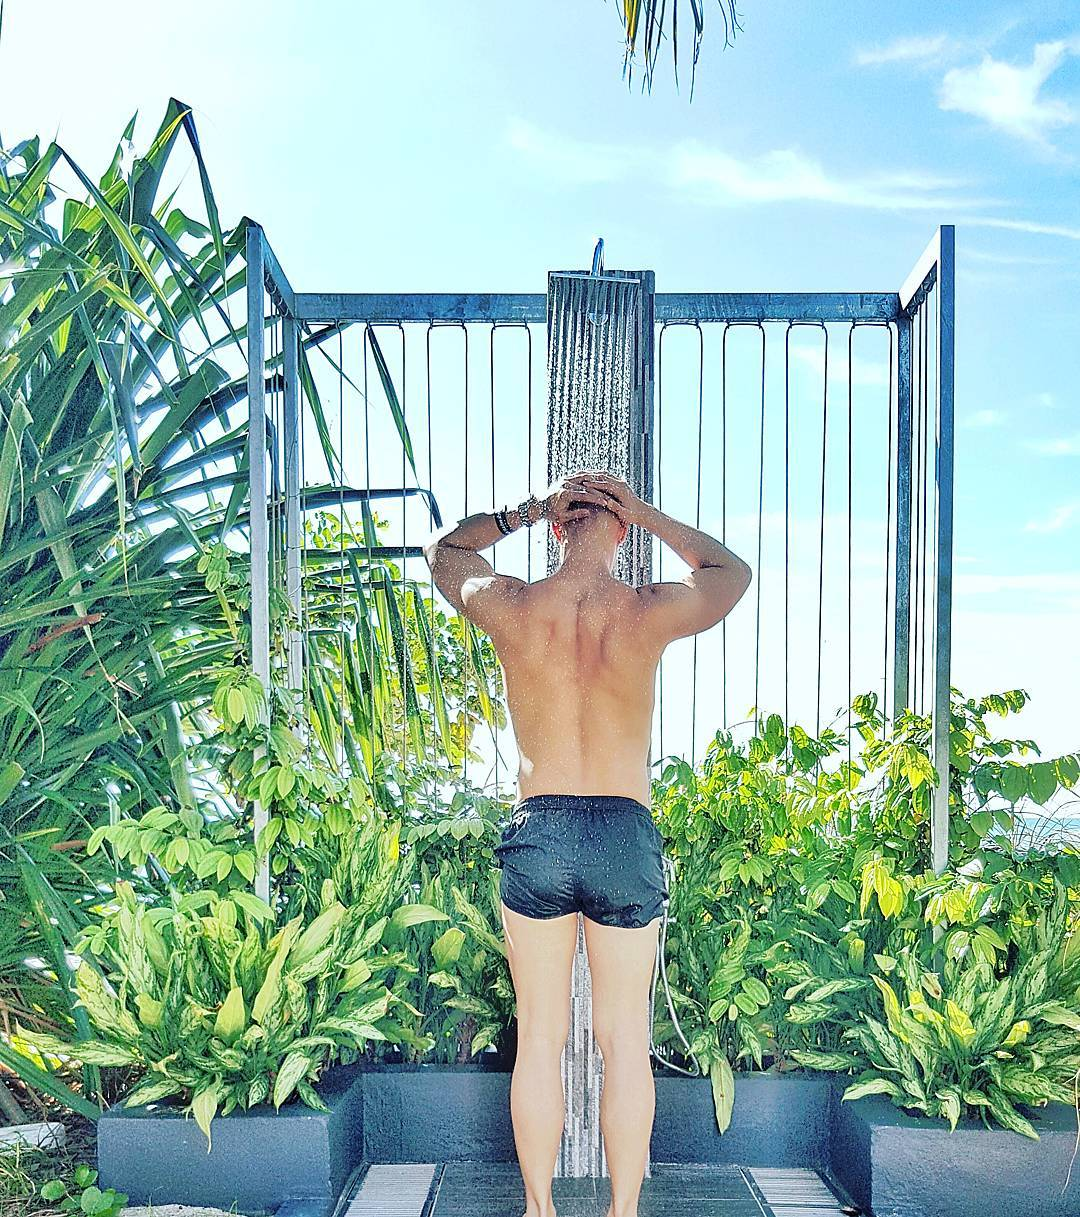 gay-travel-is-awesome-by-hubert-weekly-wanderlust-gay-penang-malaysia